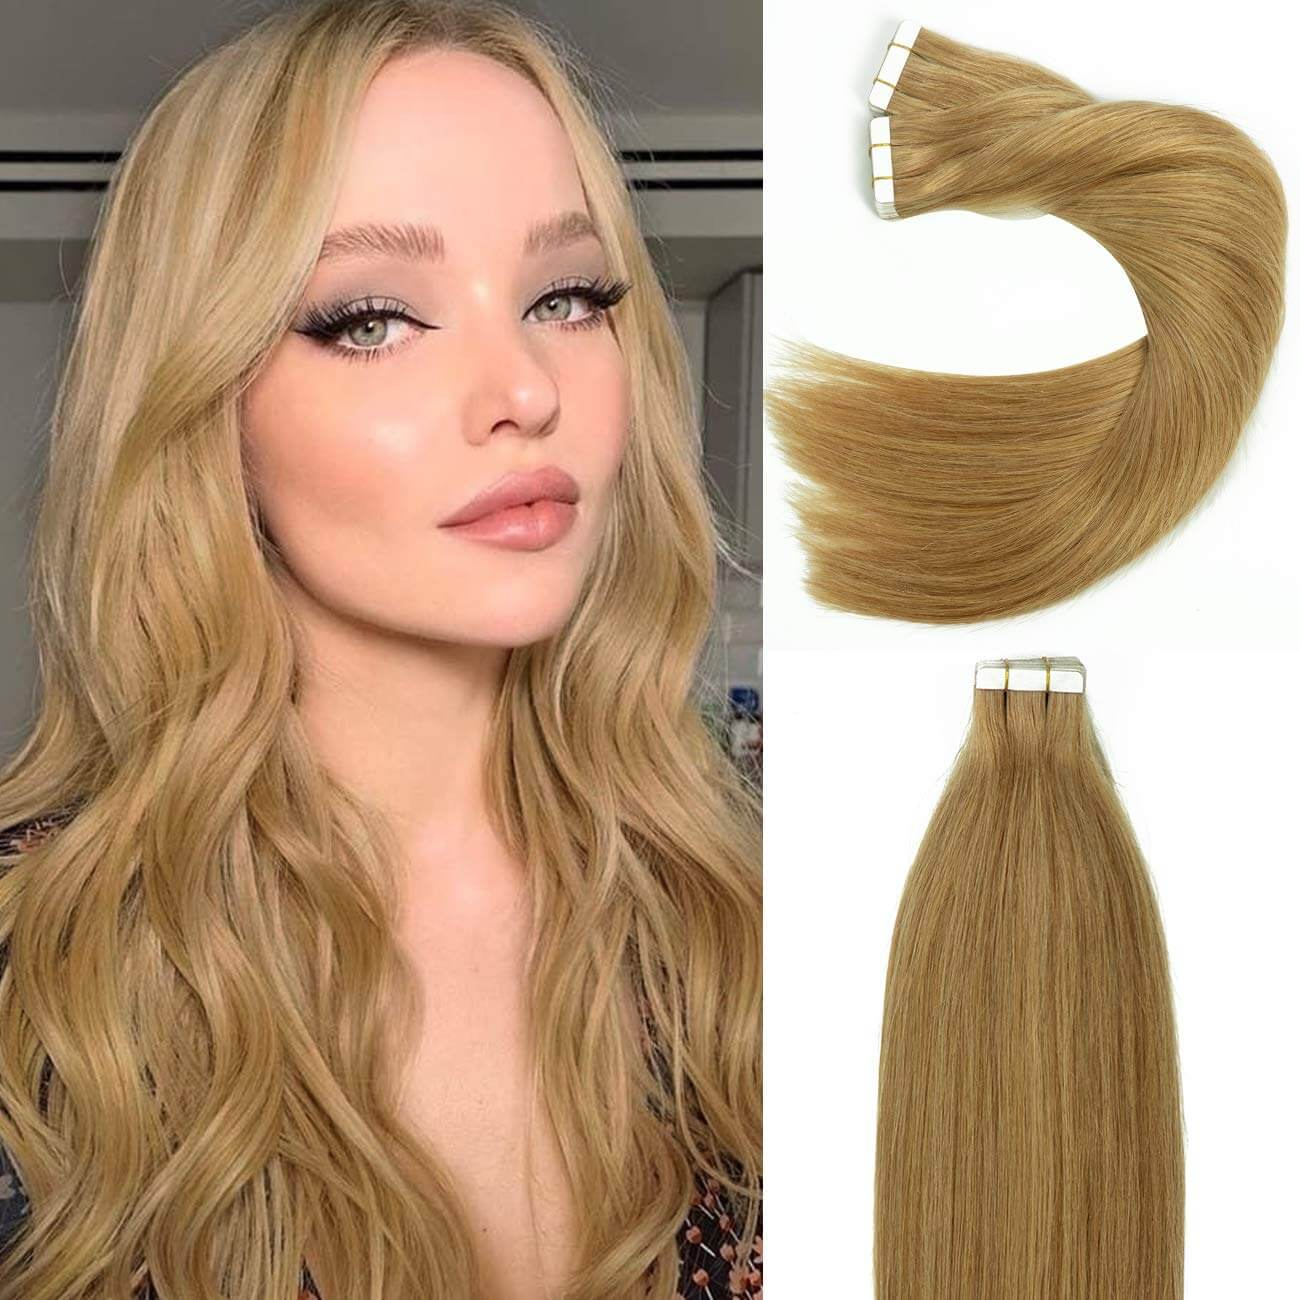 Remy Skin Weft Seamless Tape in Human Virgin Hair Extensions Strawberry Blonde #27